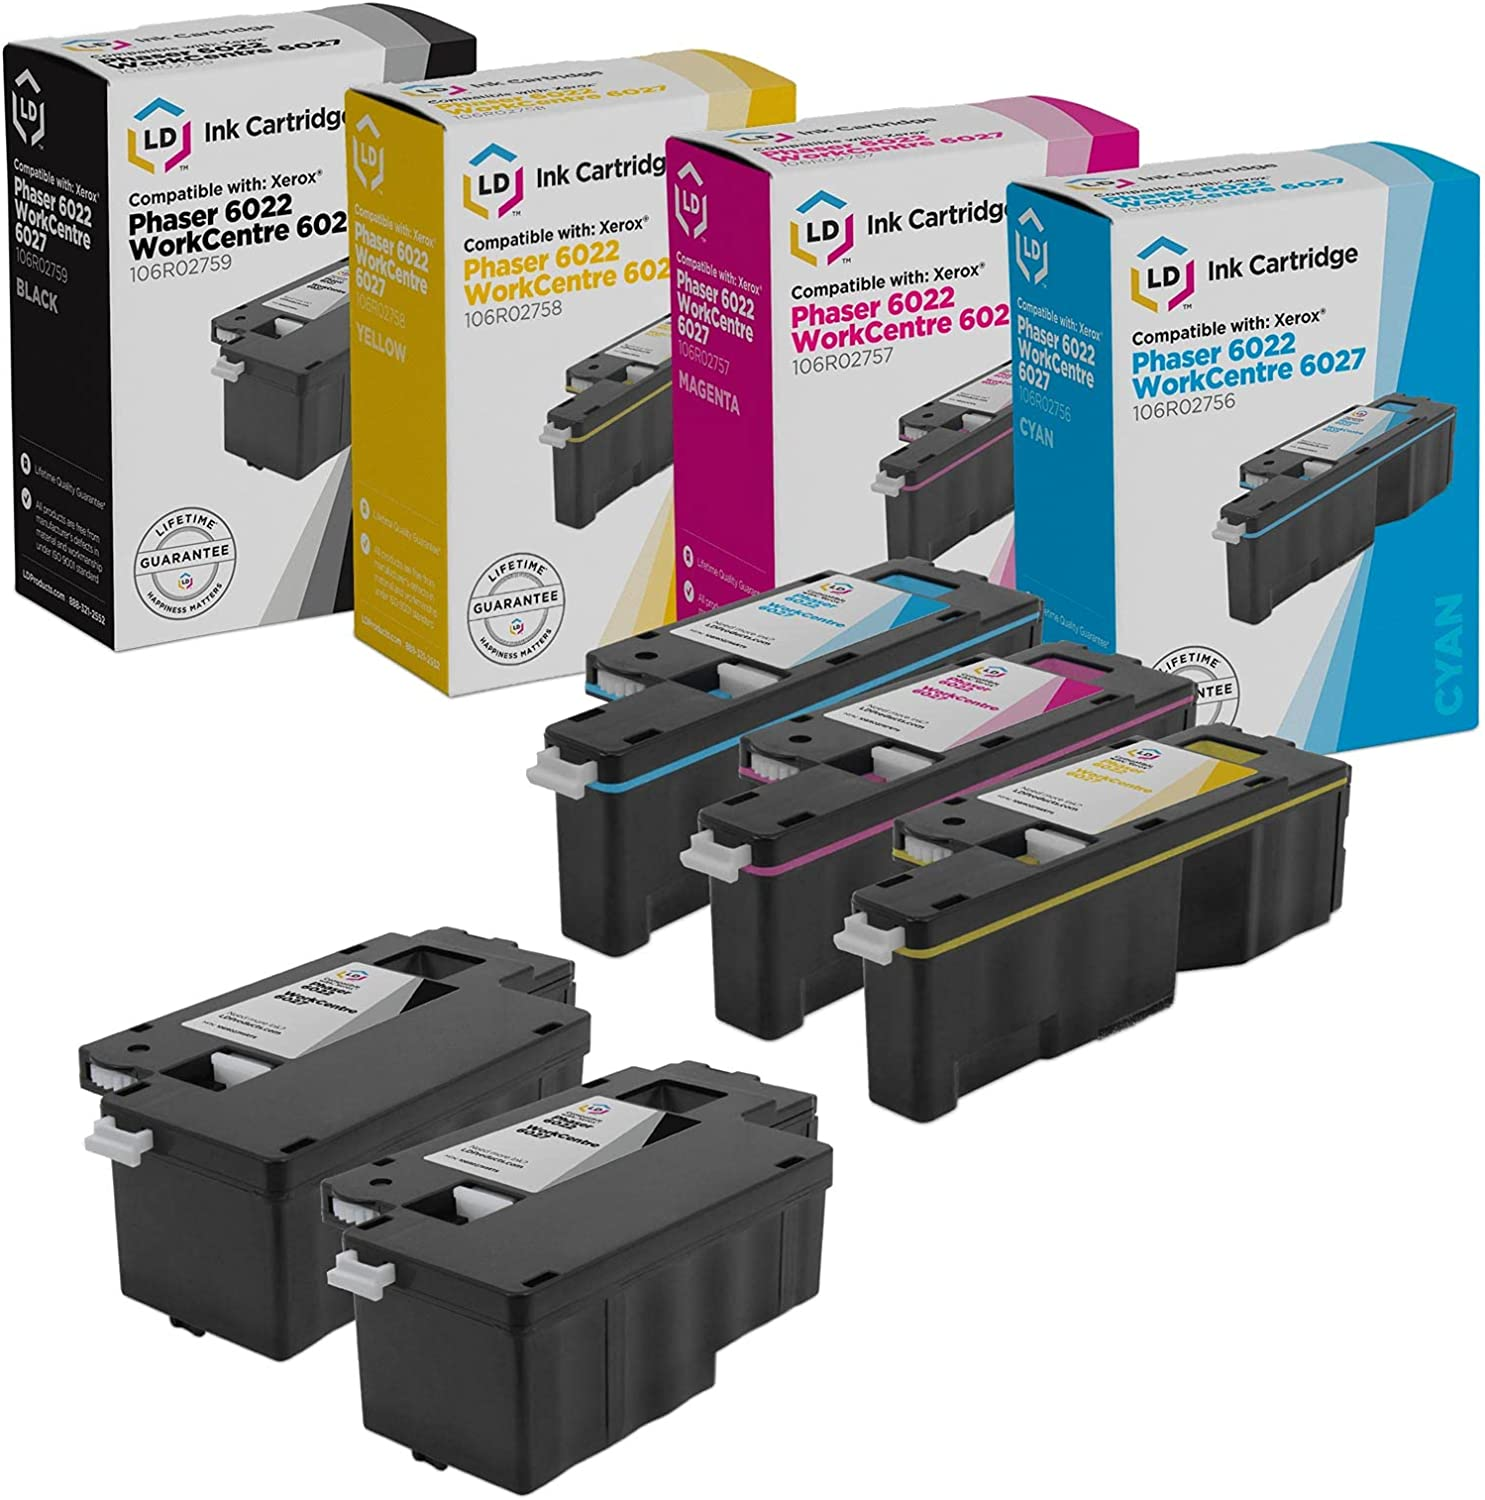 LD Remanufactured Replacements for Xerox Phaser 6022 & WorkCentre 6027 (2 Black, 1 Cyan, 1 Magenta, 1 Yellow, 5-Pack)